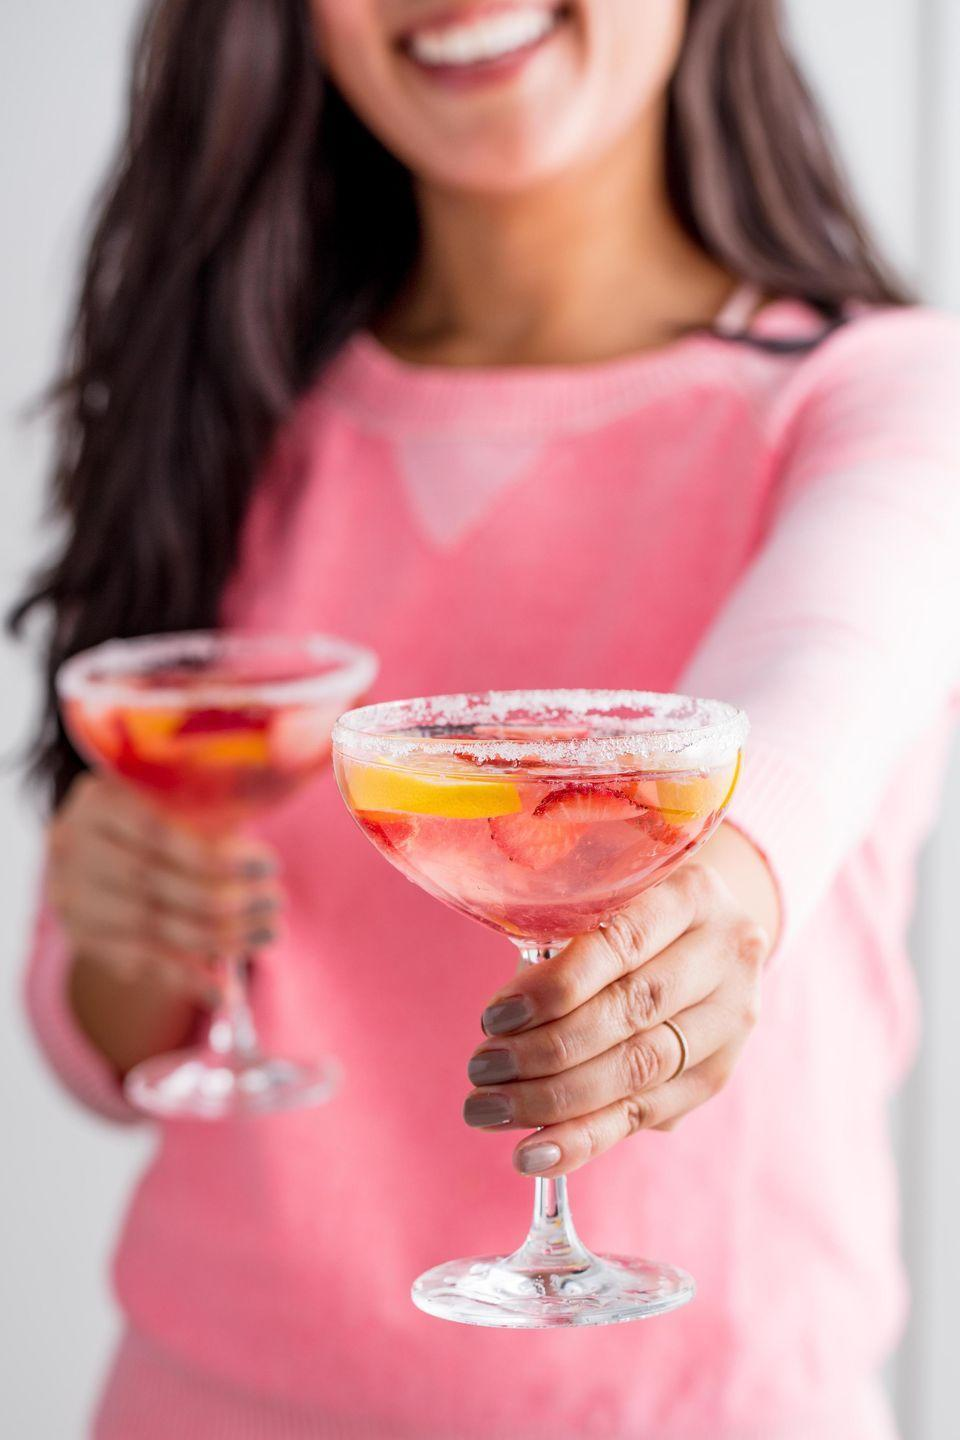 "<p>Moscato, lemonade, and vodka—what could be better?</p><p>Get the recipe from <a href=""https://www.delish.com/cooking/recipe-ideas/recipes/a54556/giggle-juice-recipe/"" rel=""nofollow noopener"" target=""_blank"" data-ylk=""slk:Delish"" class=""link rapid-noclick-resp"">Delish</a>.</p>"